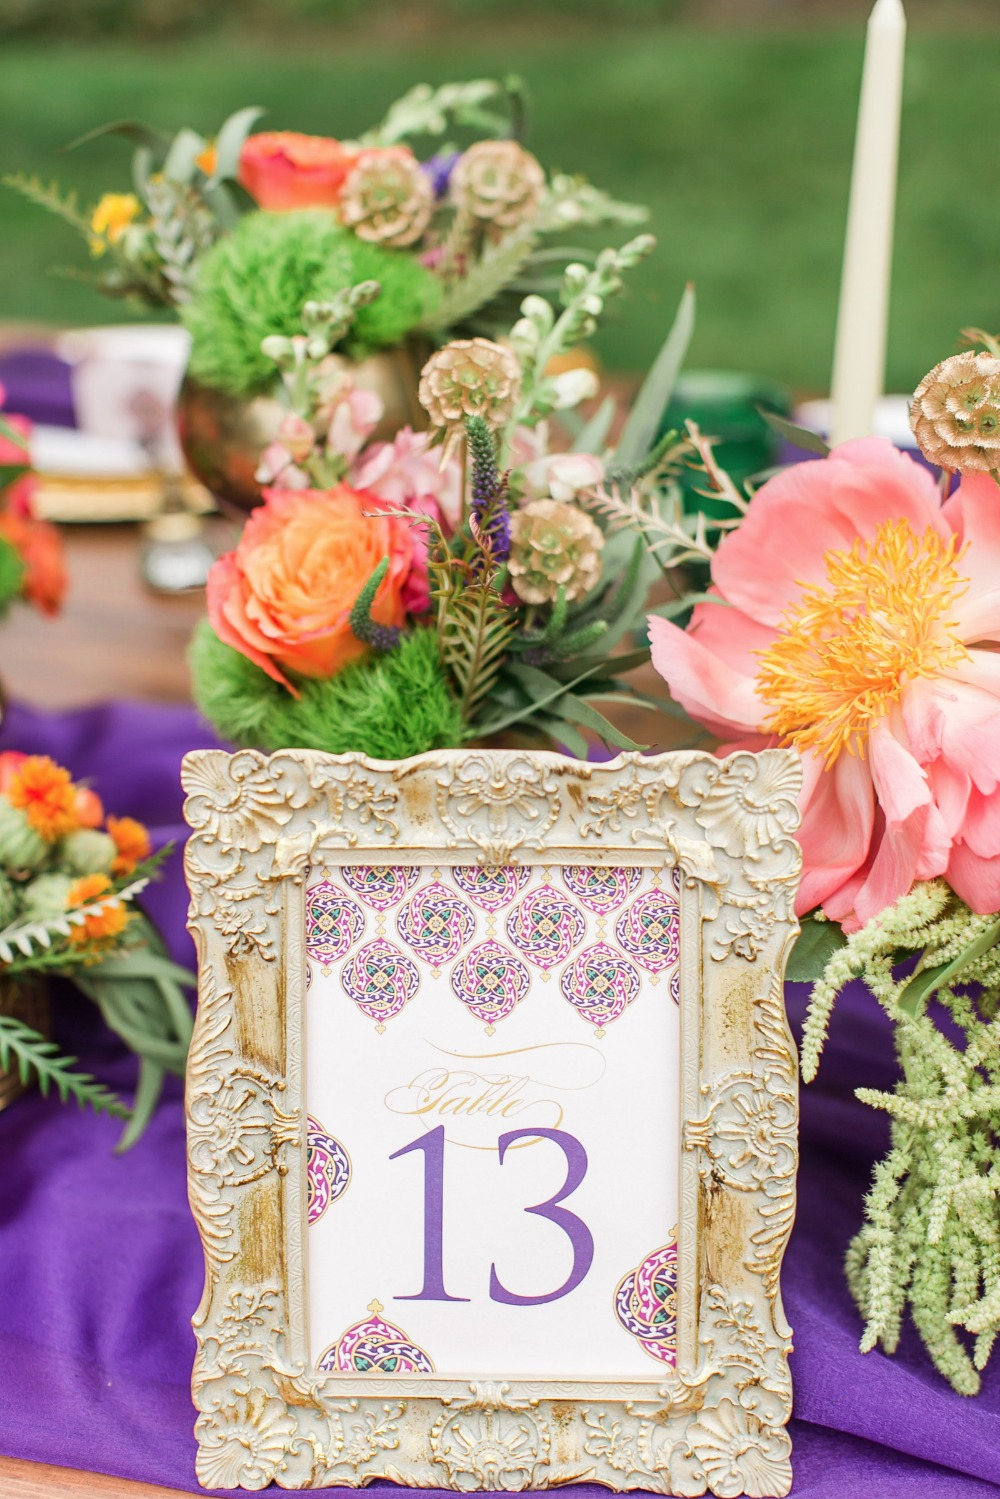 Framed table number idea